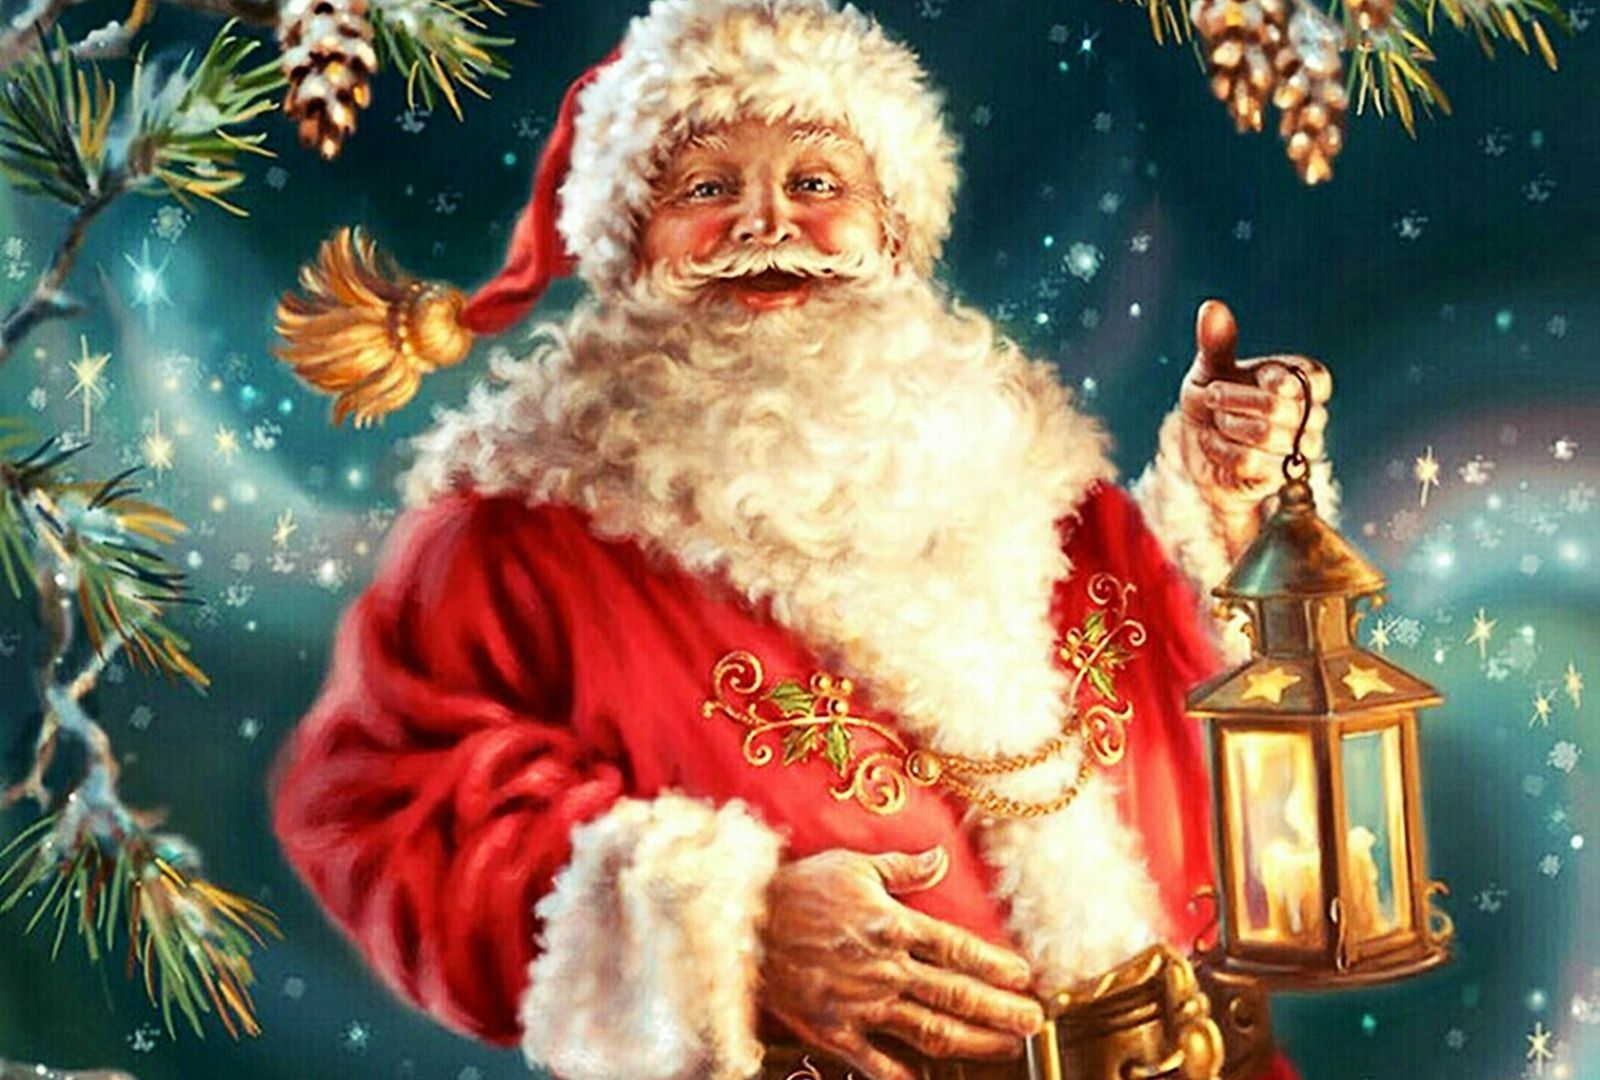 Wallpaper Full Hd Santa Claus 2019 Biz Wallpaper